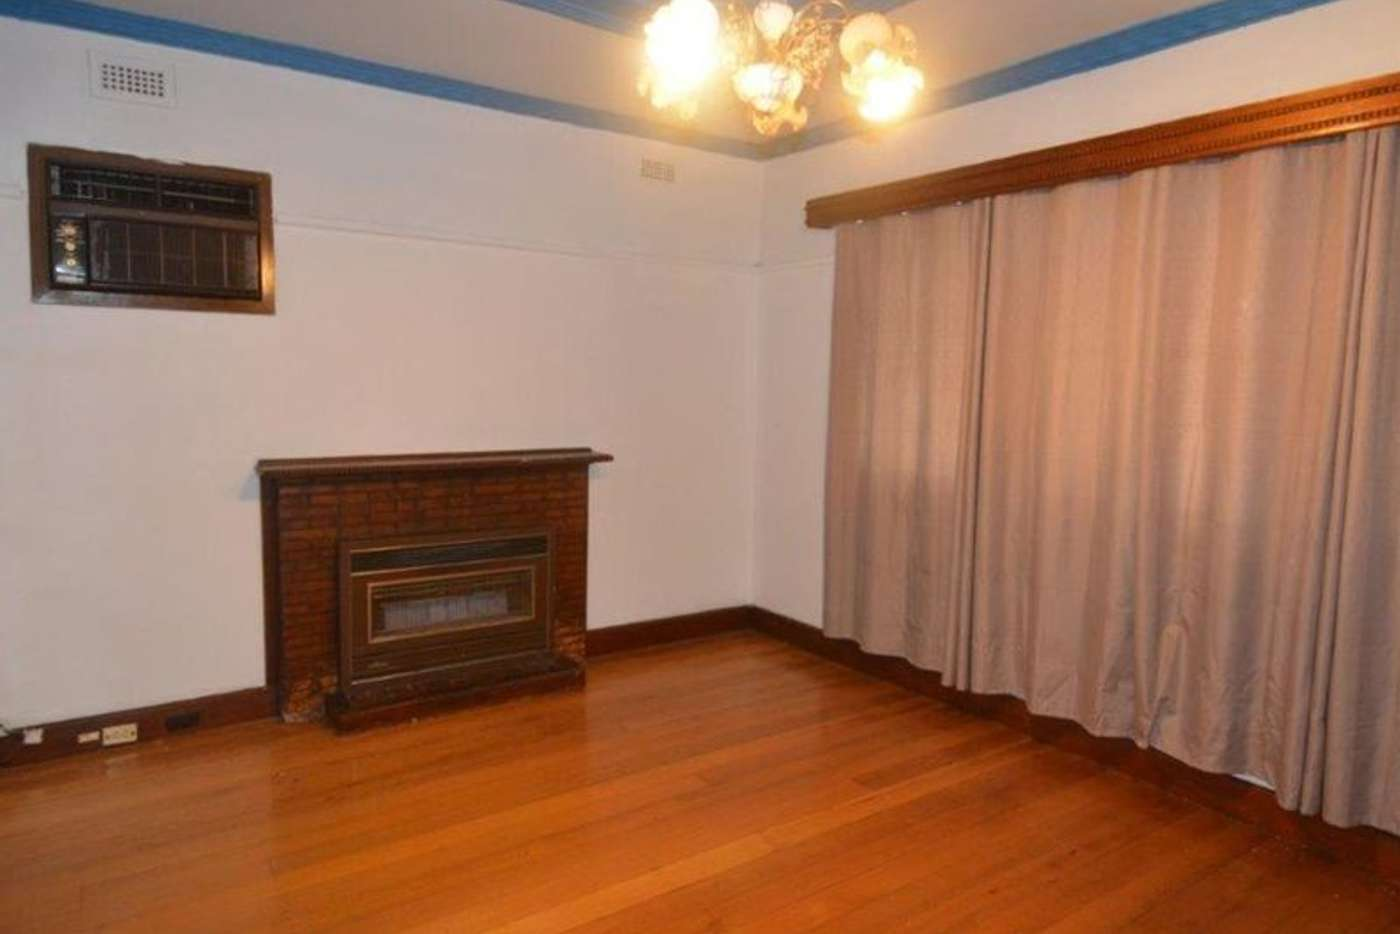 Seventh view of Homely house listing, 6 Sredna Street, West Footscray VIC 3012